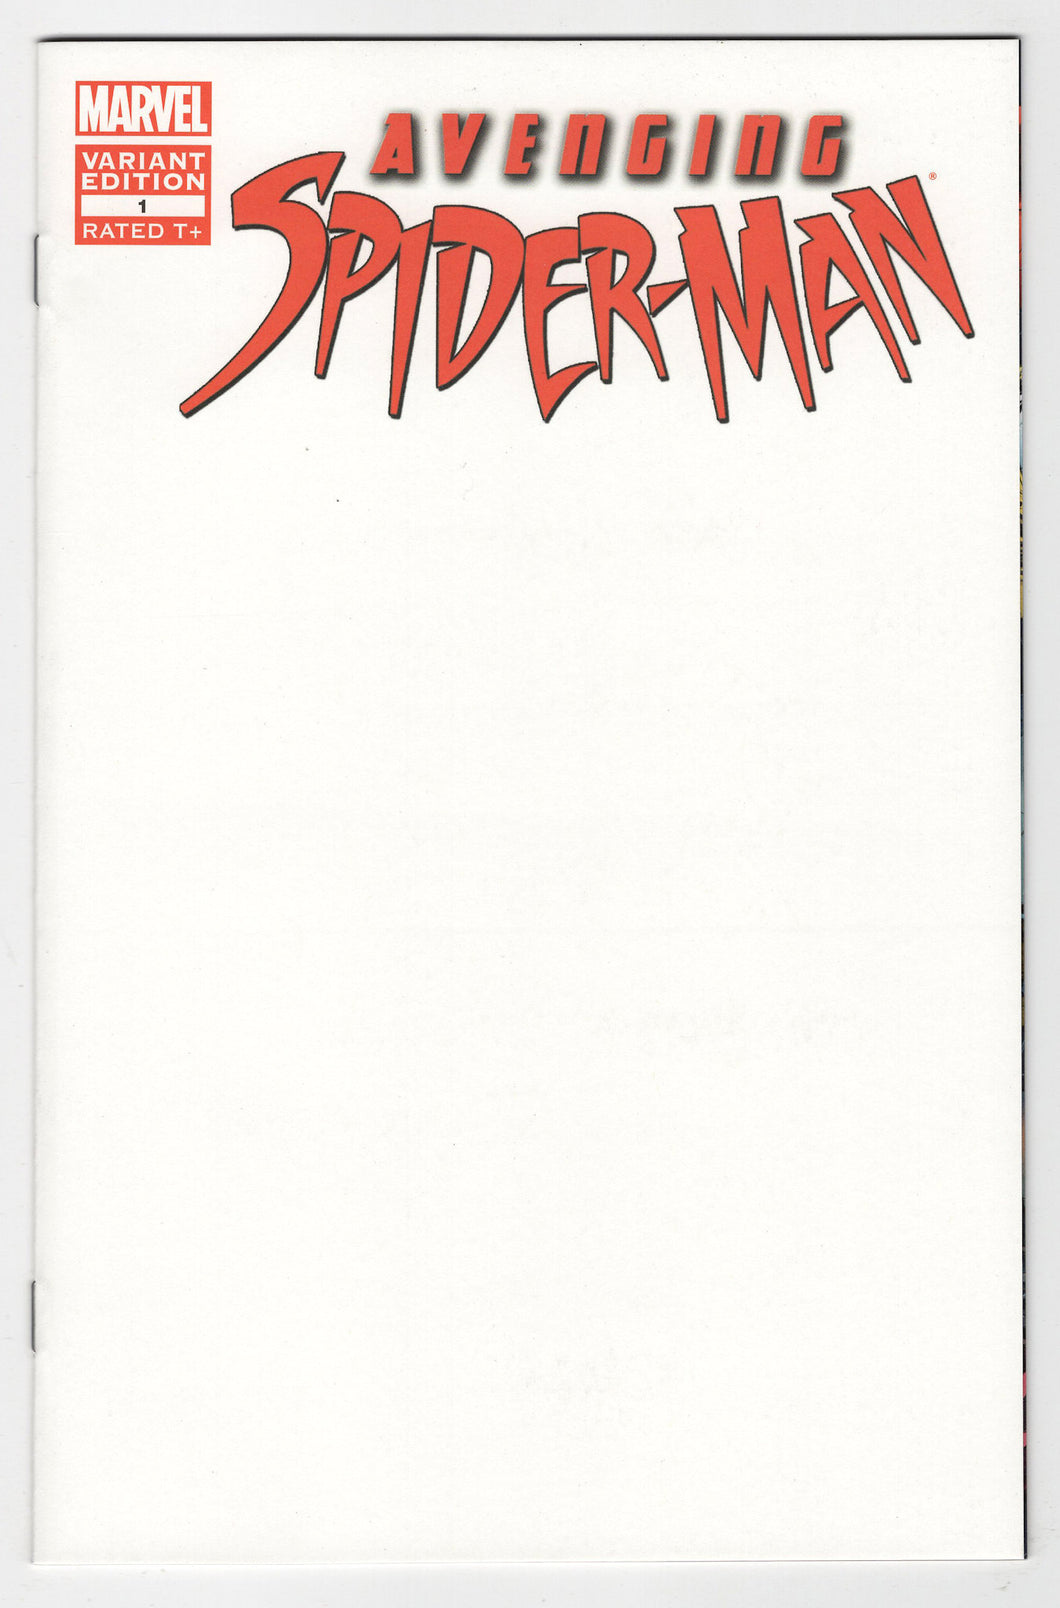 Avenging Spider-Man #1 Blank Sketch Variant Cover Front